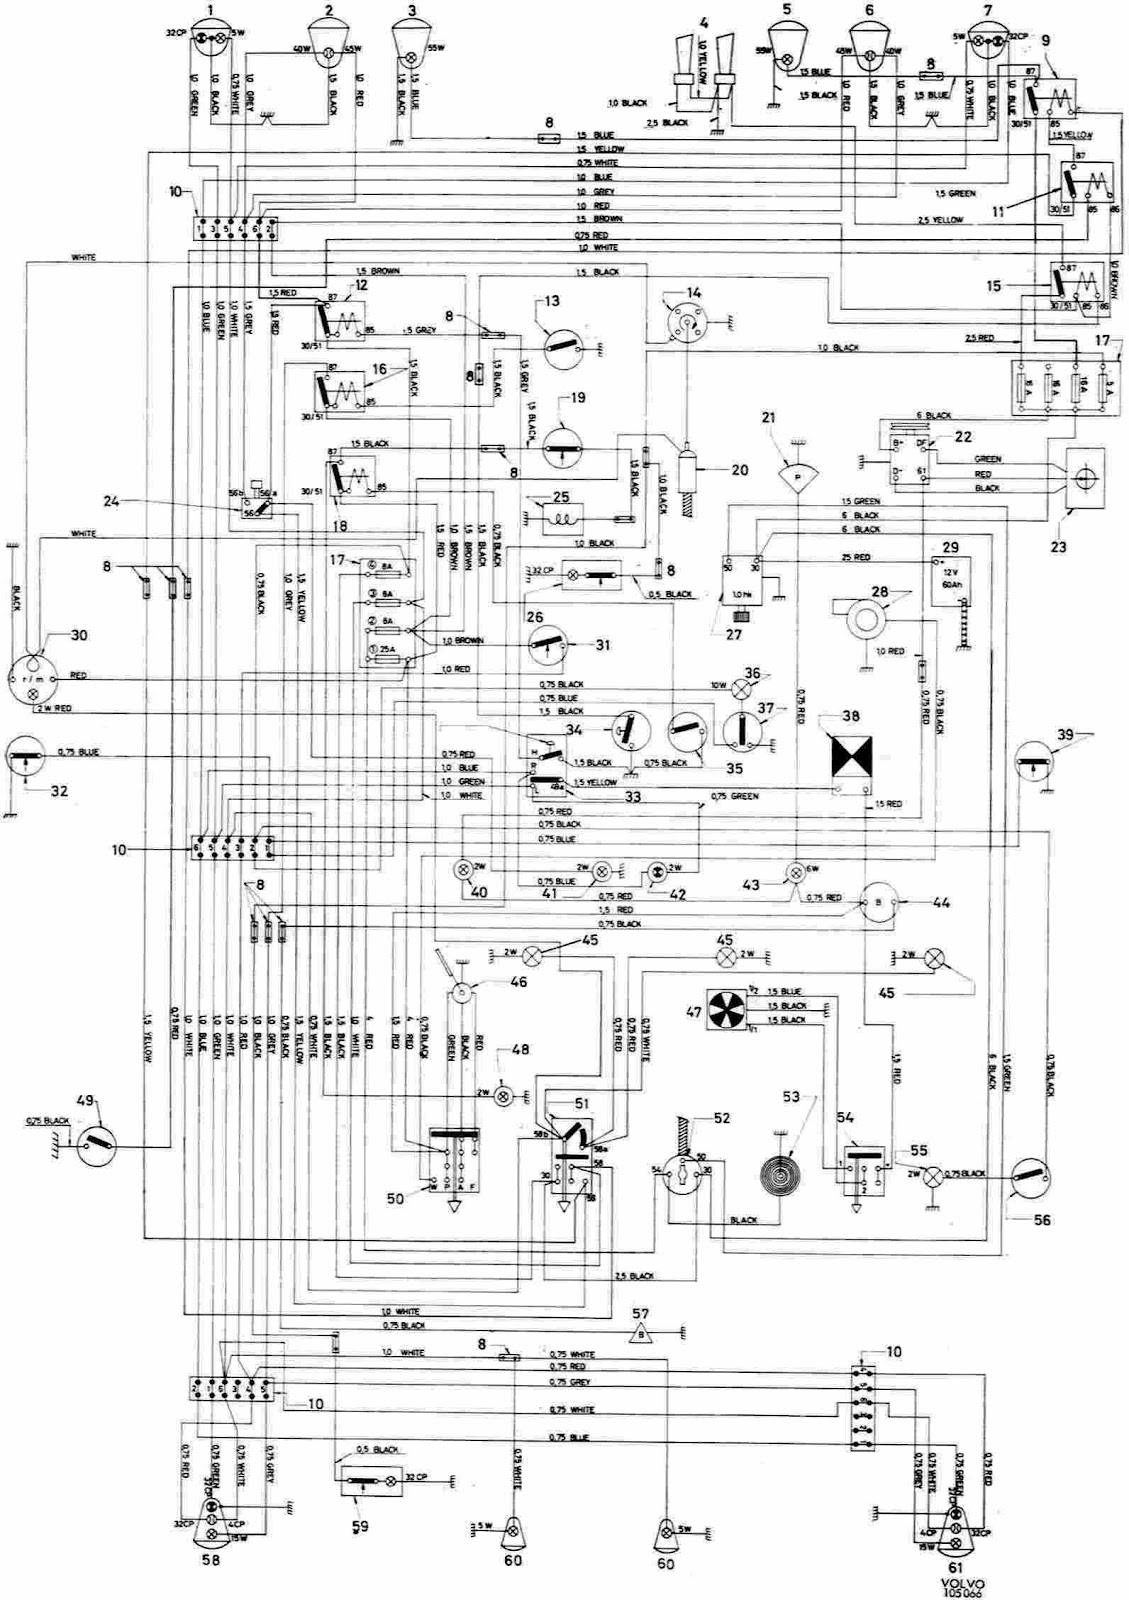 Diagram Electrical Wiring Diagram For 1996 Volvo 850